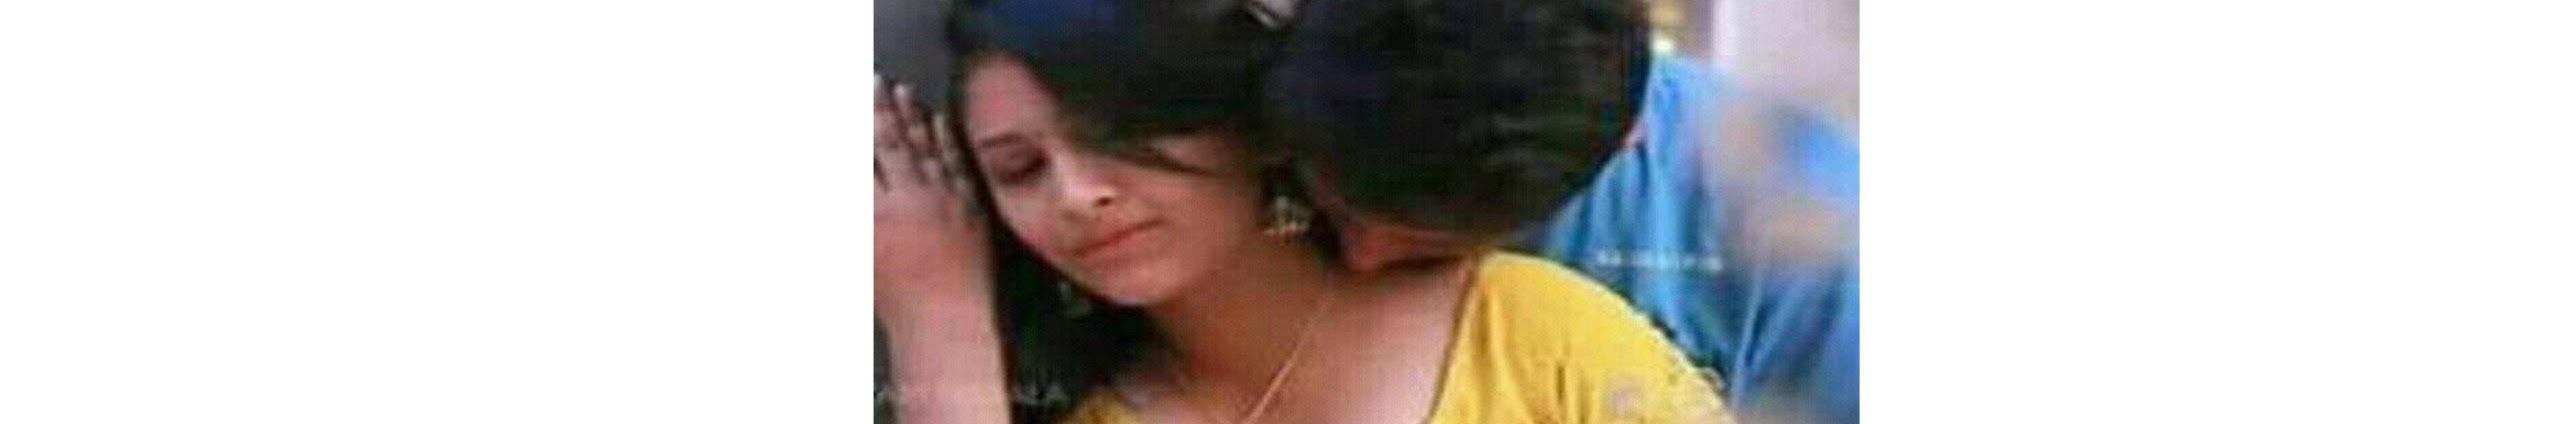 Mallu Aunty Hot Videos Youtube Channel Analytics And Report Powered By Noxinfluencer Mobile